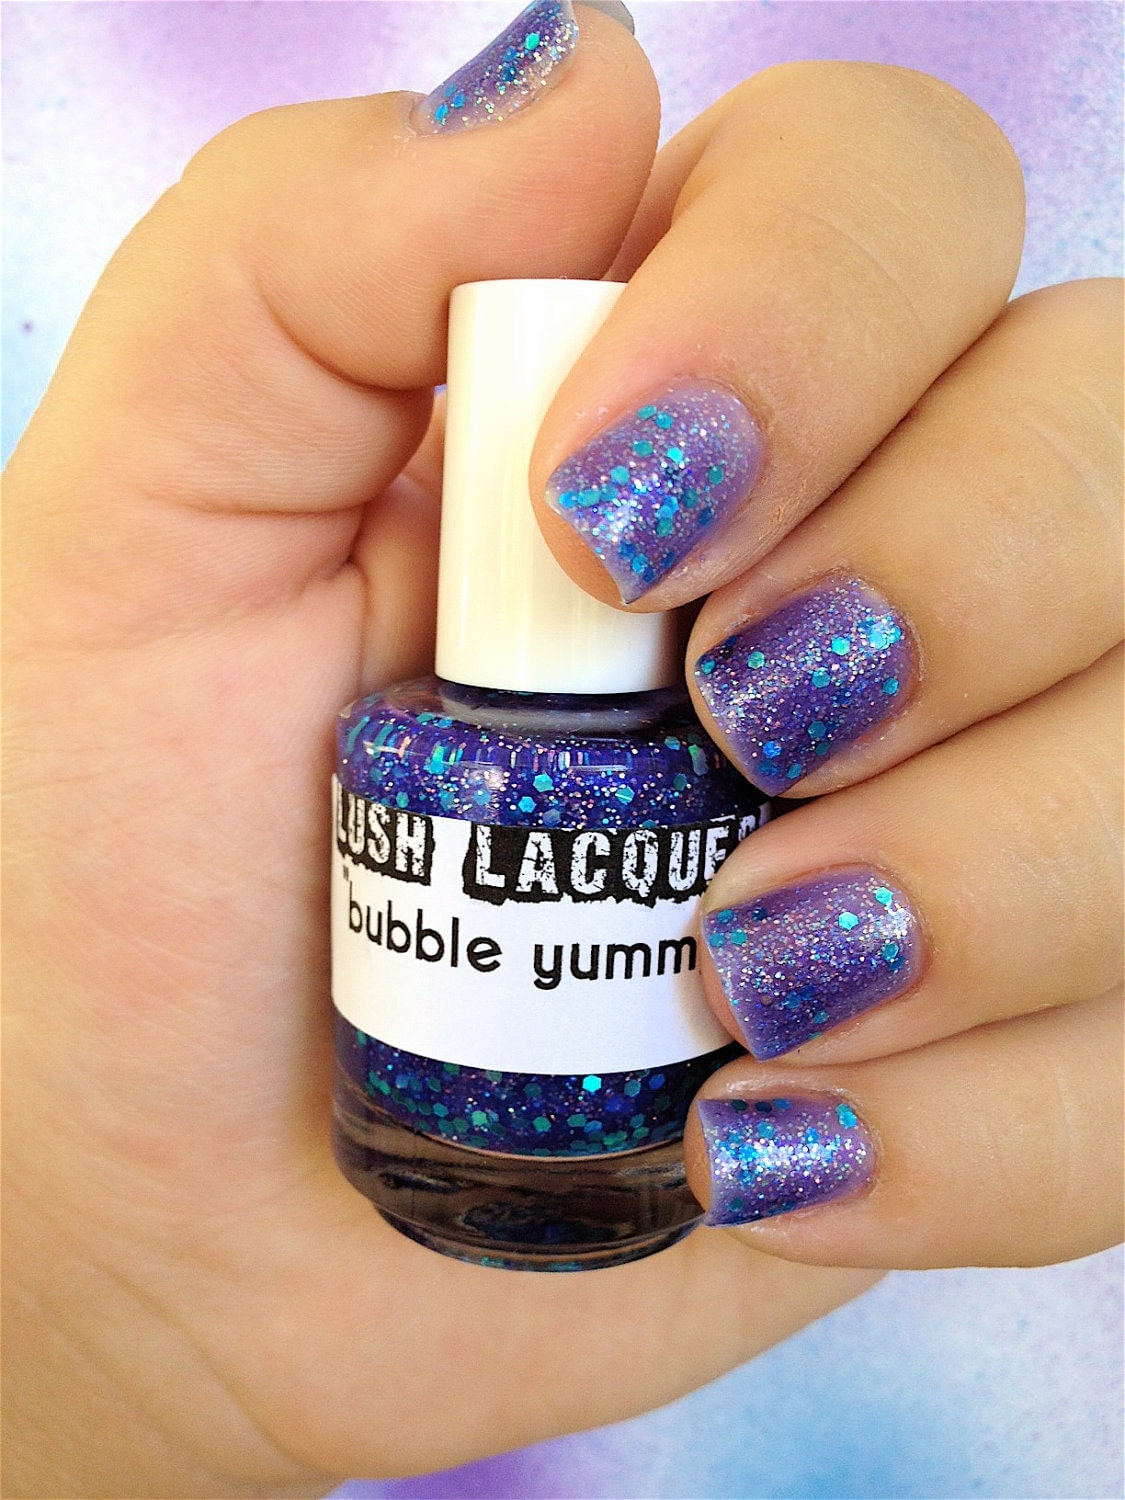 Bubble Yummy :  Custom-Blended Glitter Nail Polish / Lacquer